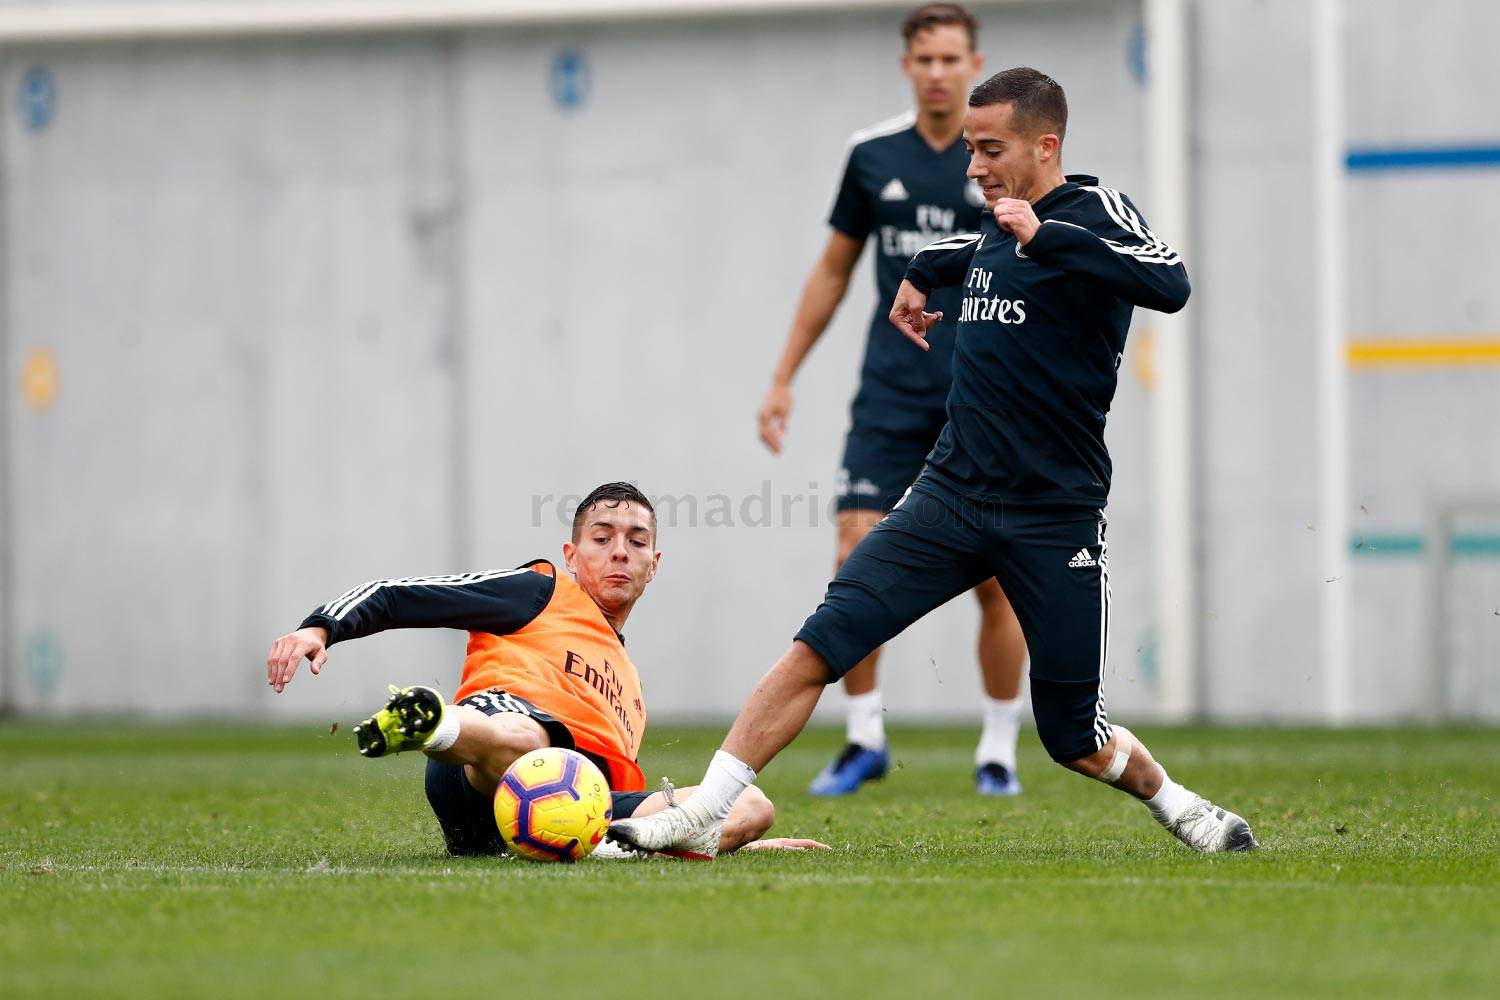 Real Madrid - Entrenamiento del Real Madrid - 16-11-2018